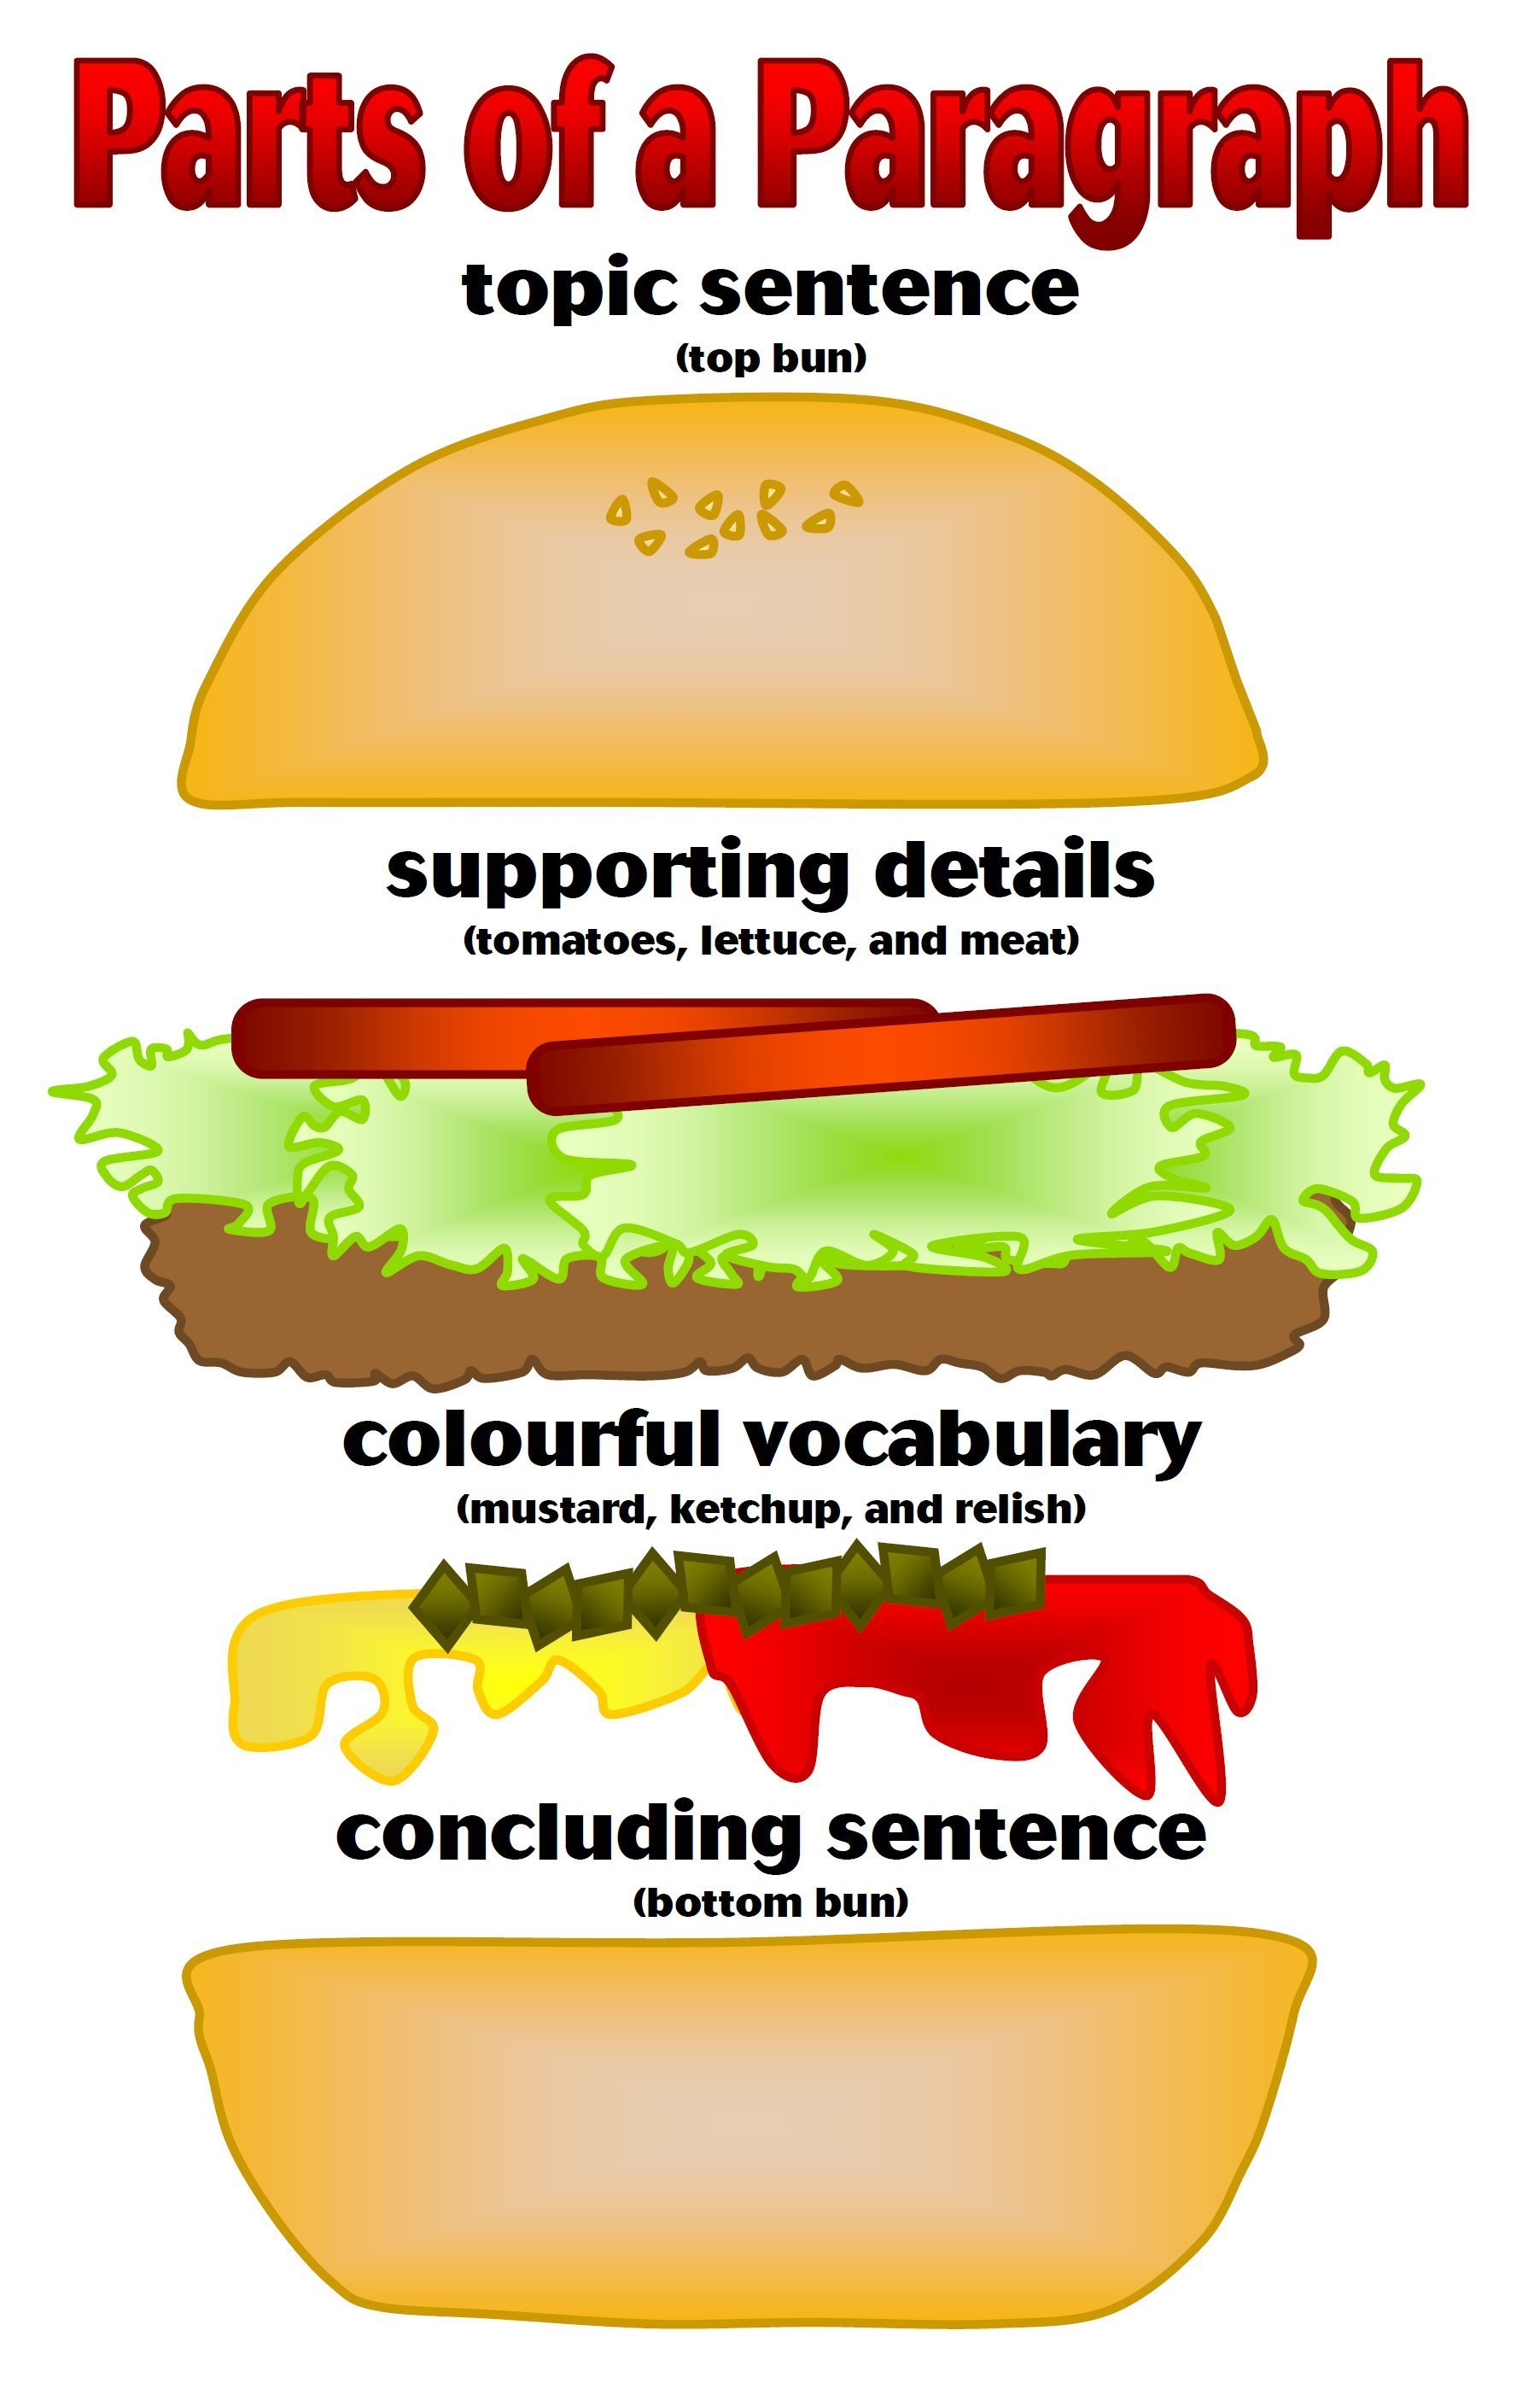 Parts of a paragraph illustrated as parts of a hamburger, with the supporting details as the tomatoes, lettuce and meat, colourful vocabulary as the mustard, ketchup and relish, concluding sentence as the bottom bun.